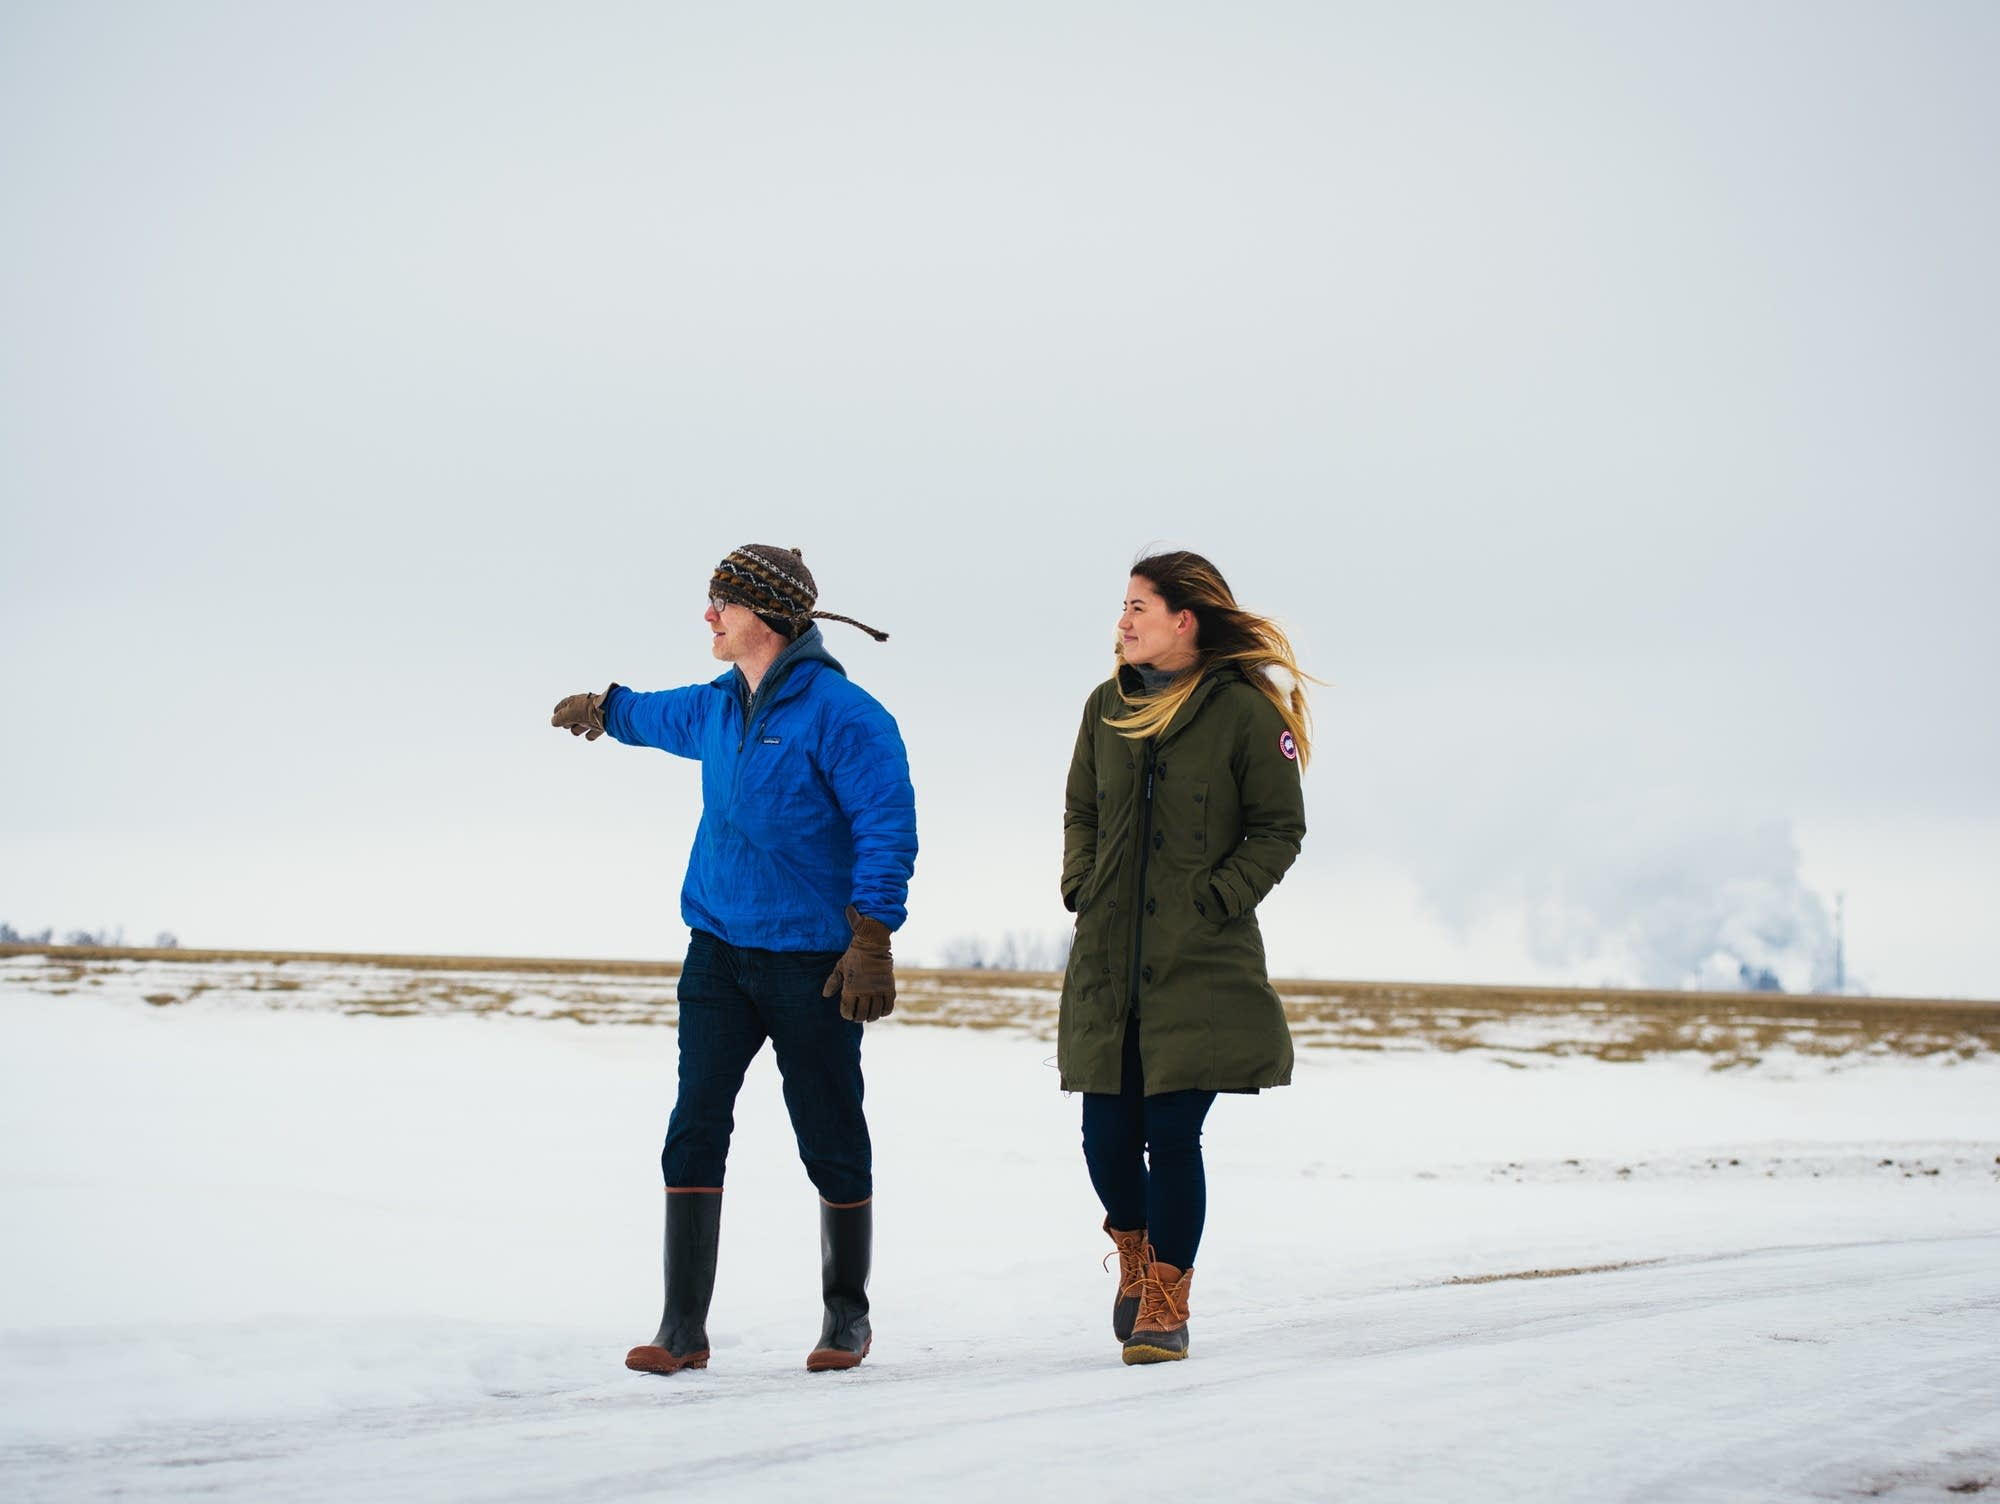 Fred Child looks across the beet field with Molly Yeh